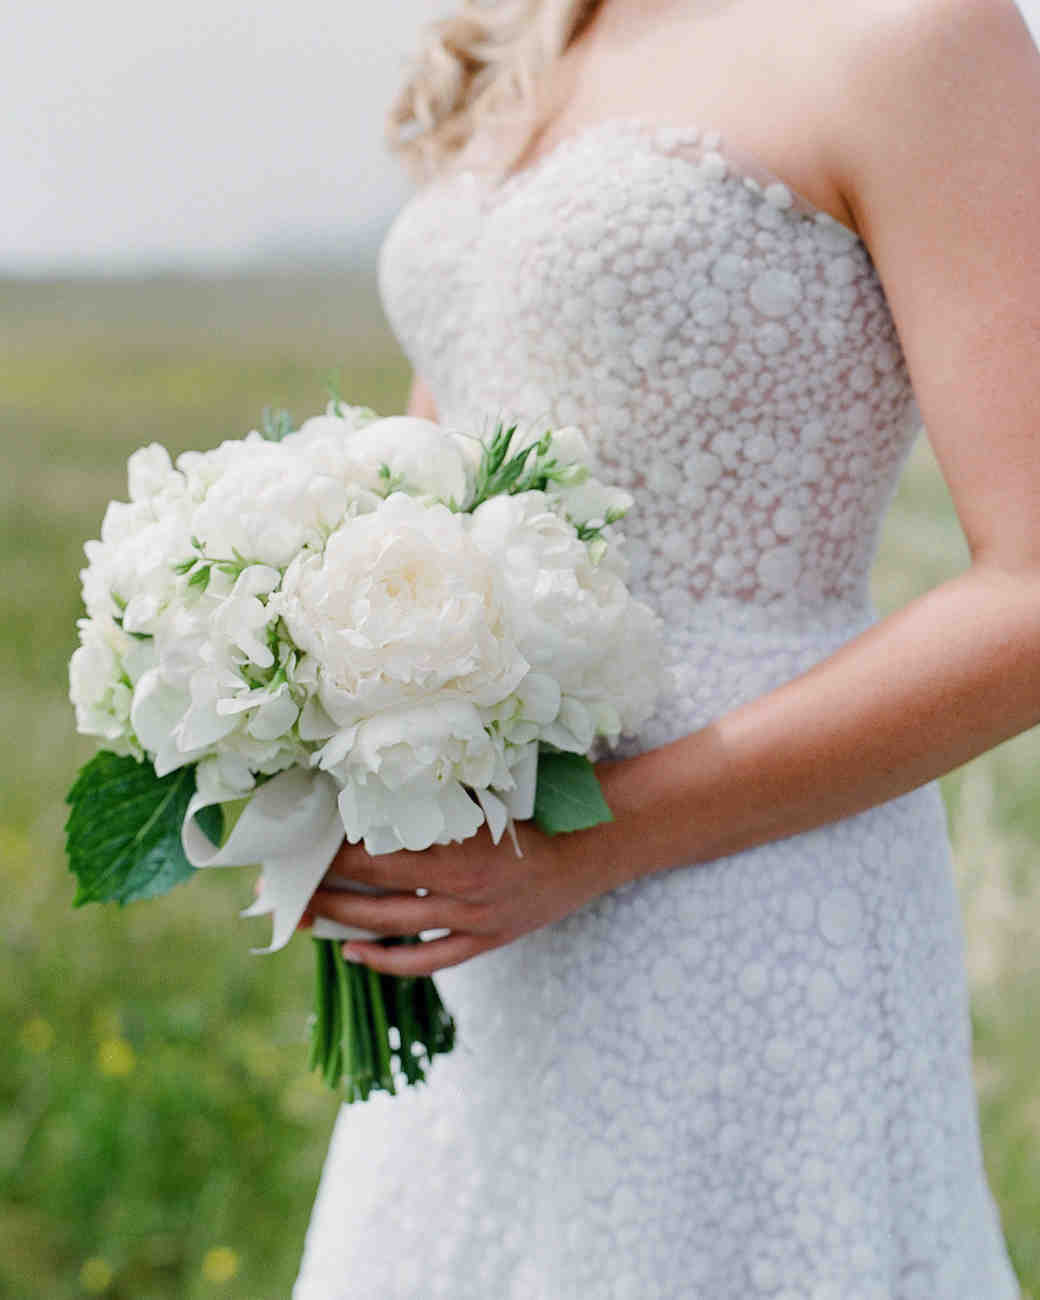 whitney zach wedding bride bouquet white peonies